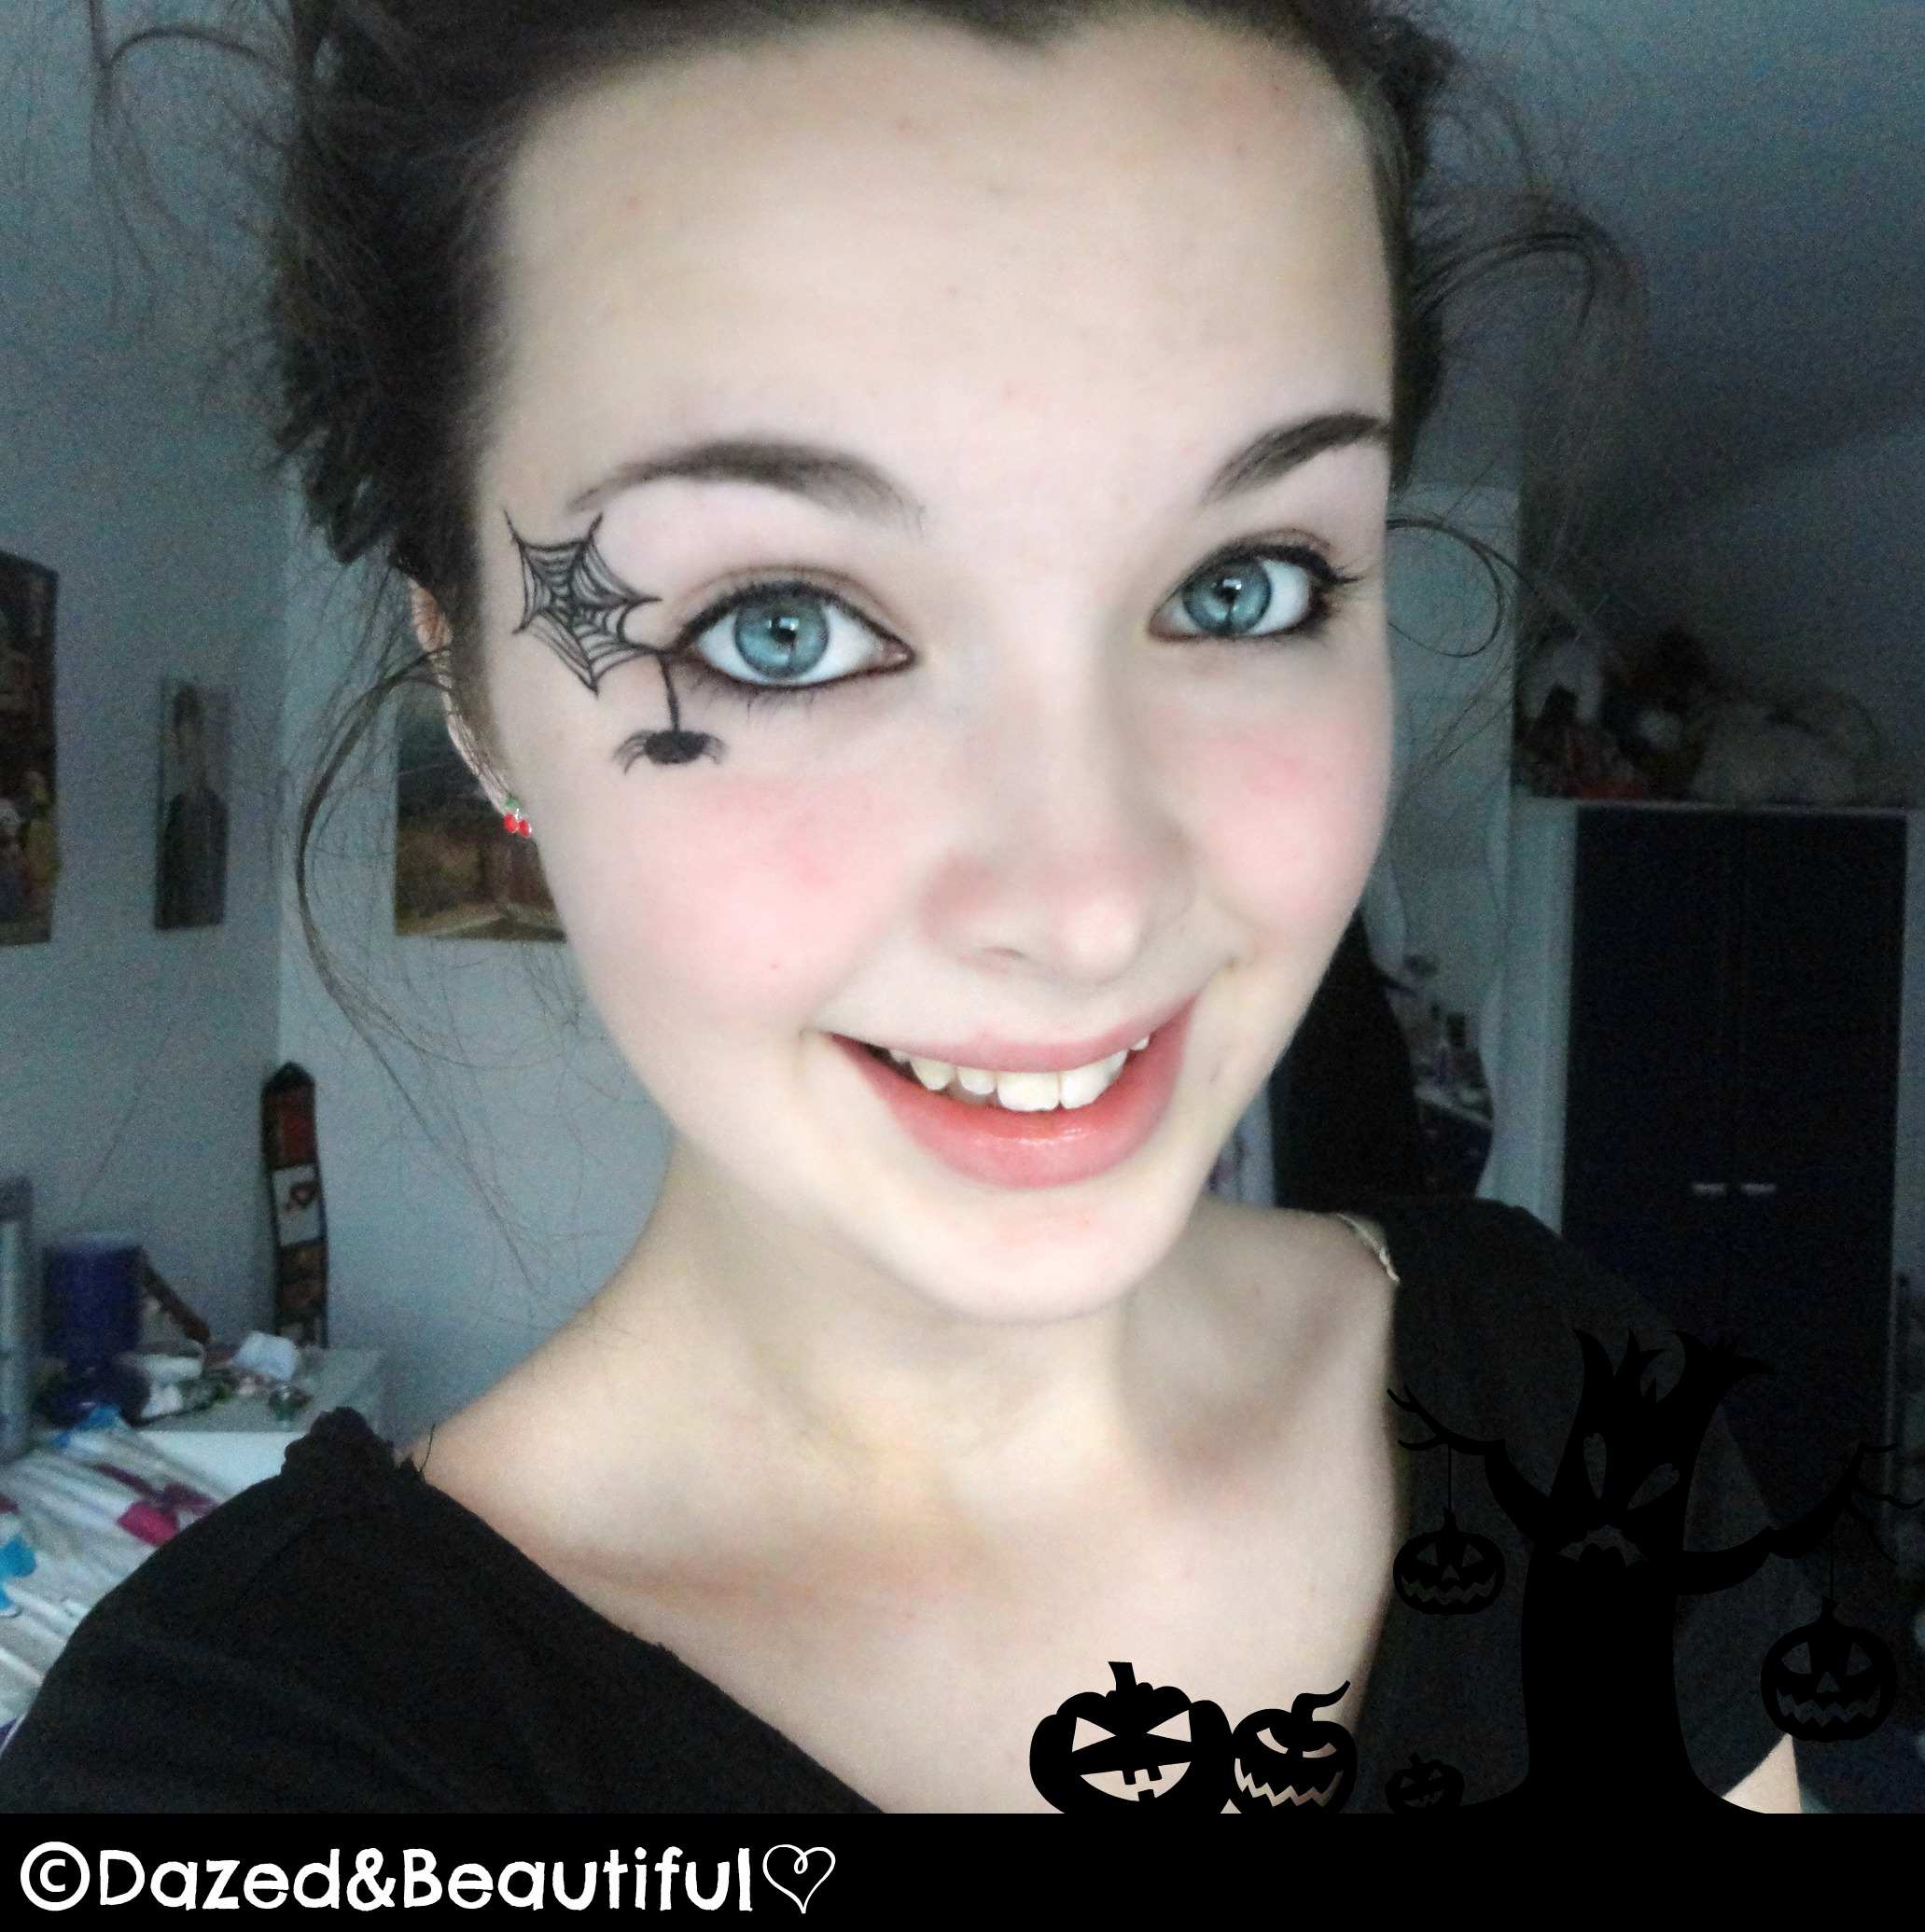 Spider Eye Makeup – Dazed&Beautiful